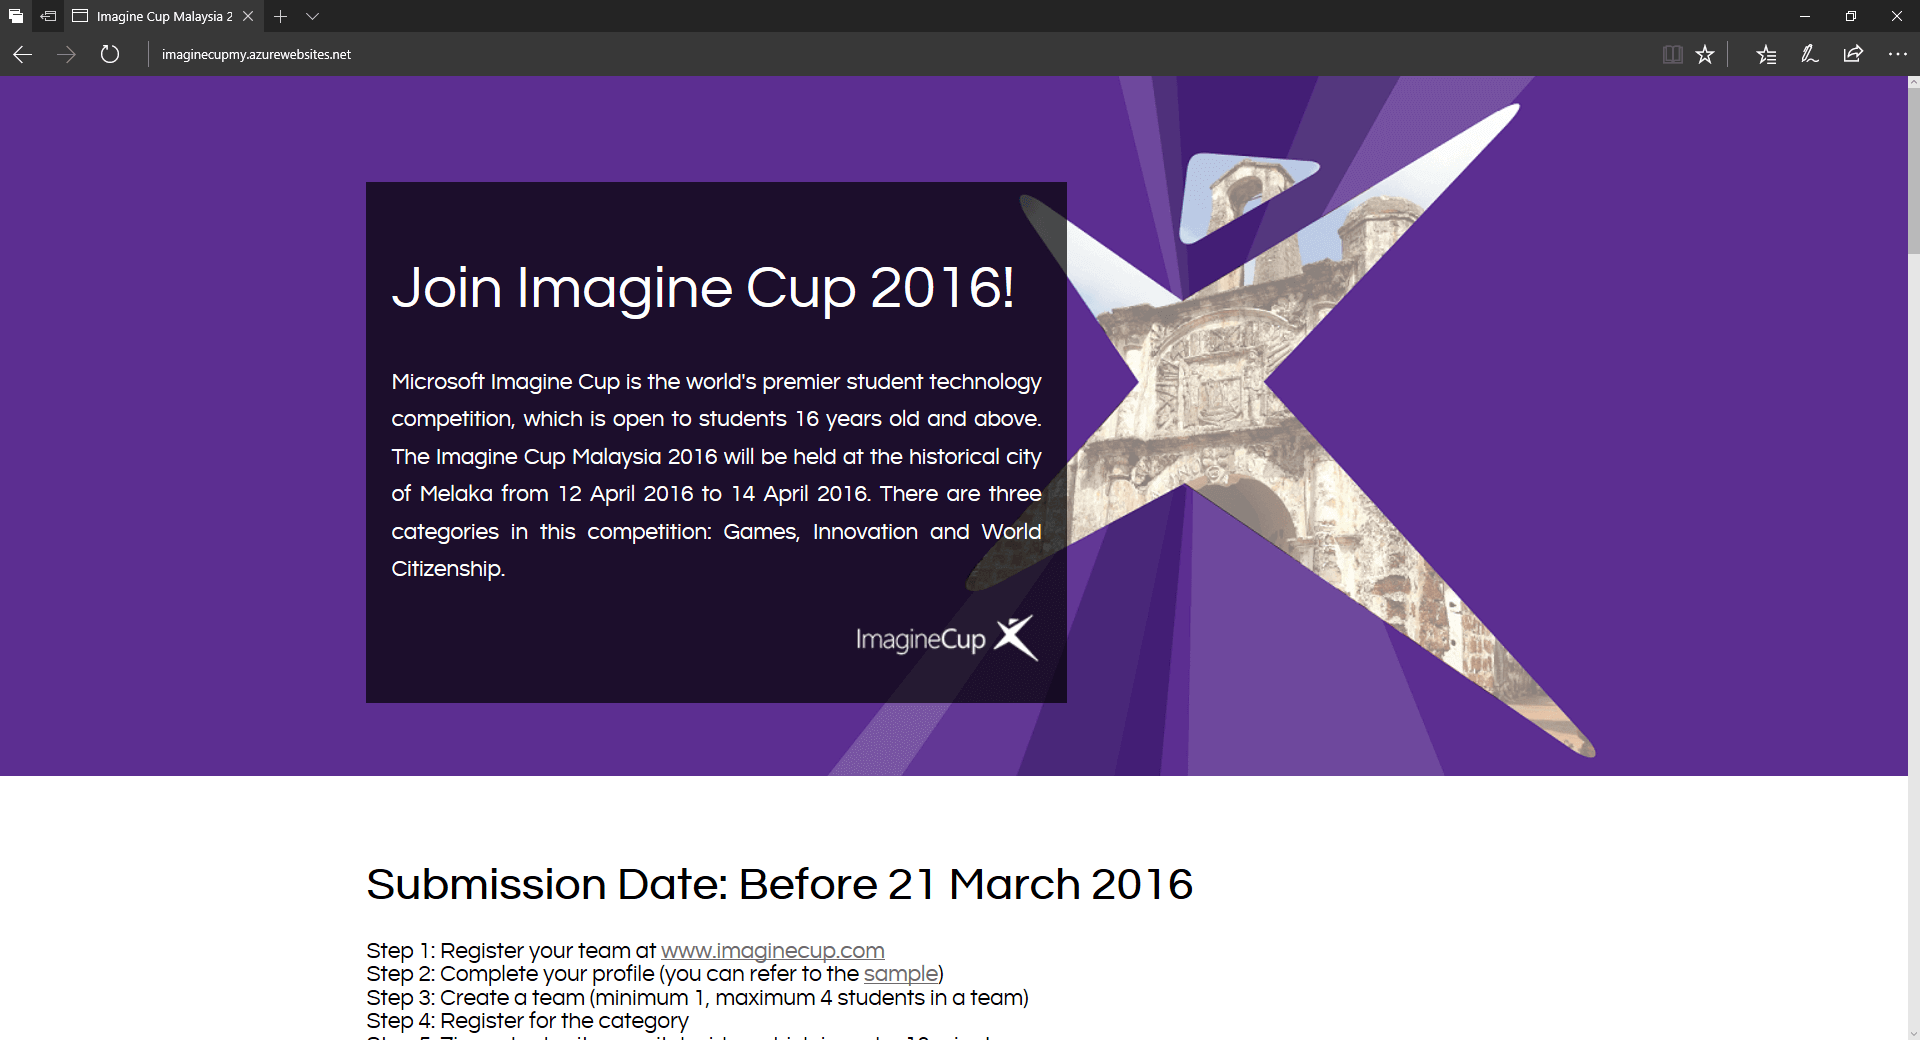 Microsoft Imagine Cup Malaysia 2016 Submission Website